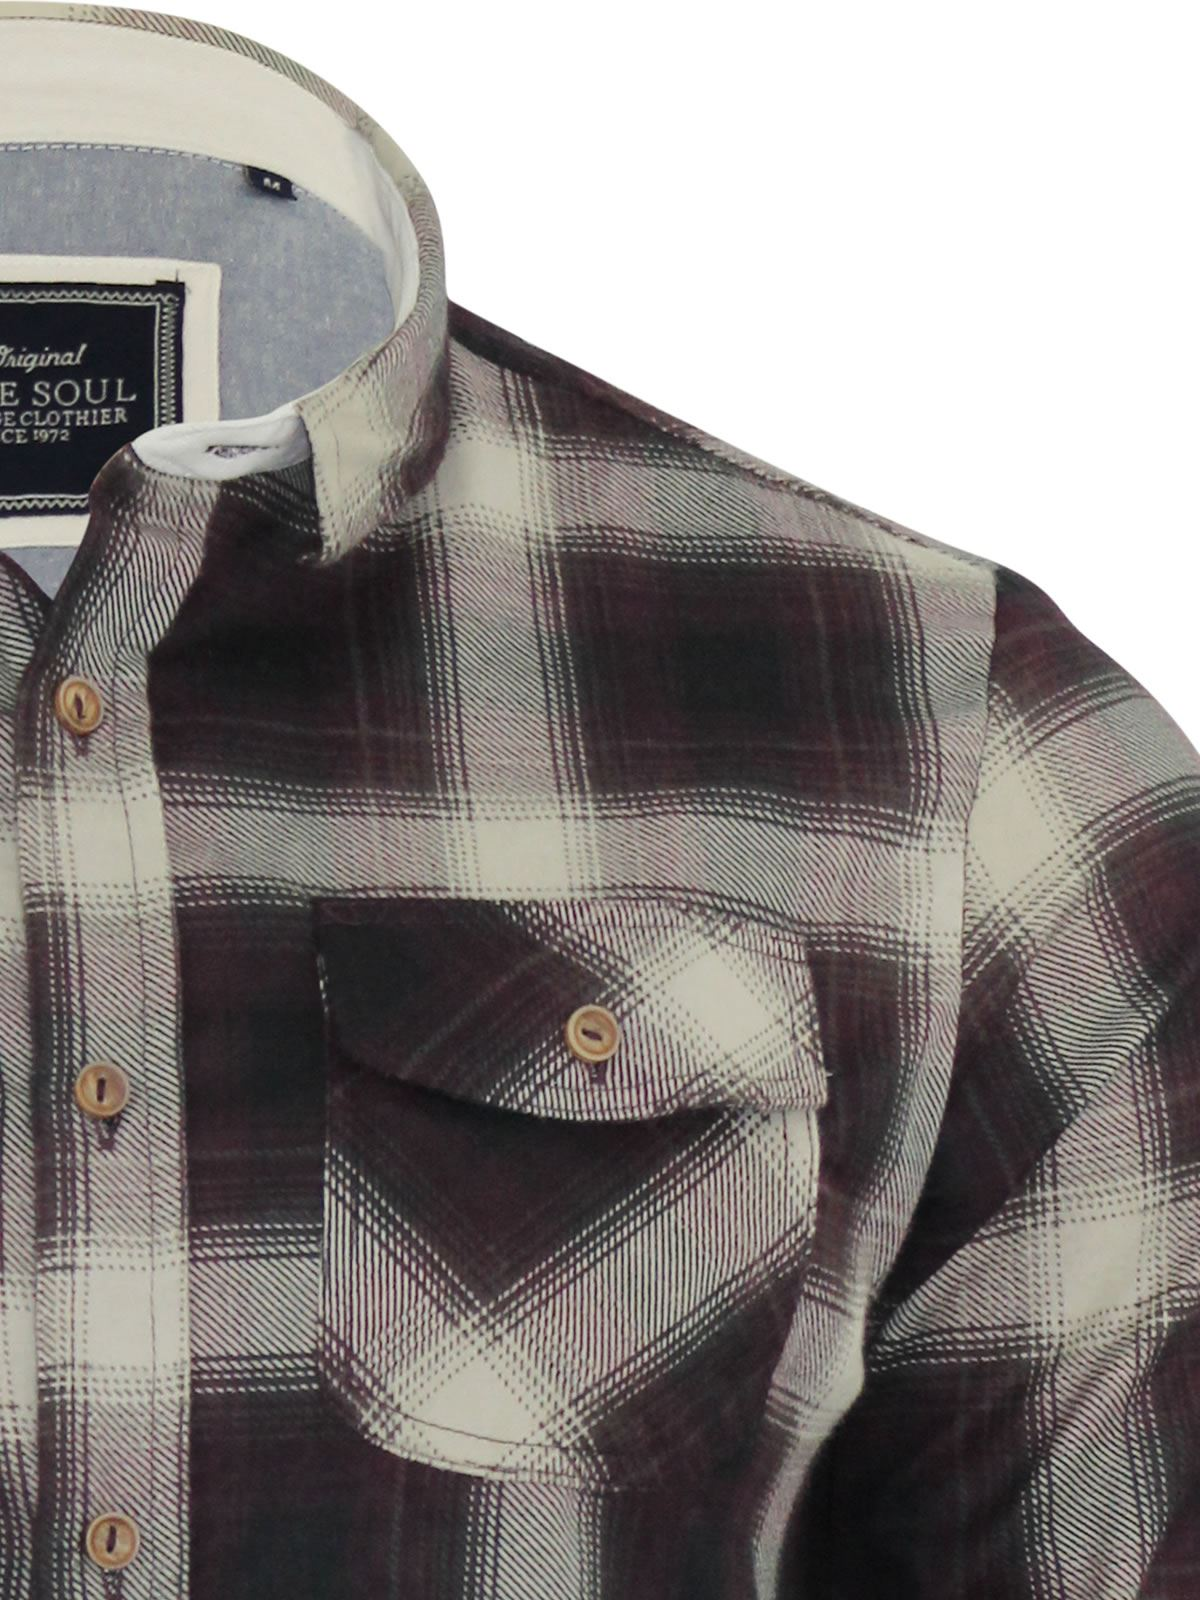 Mens-Check-Shirt-Brave-Soul-Flannel-Brushed-Cotton-Long-Sleeve-Casual-Top thumbnail 19